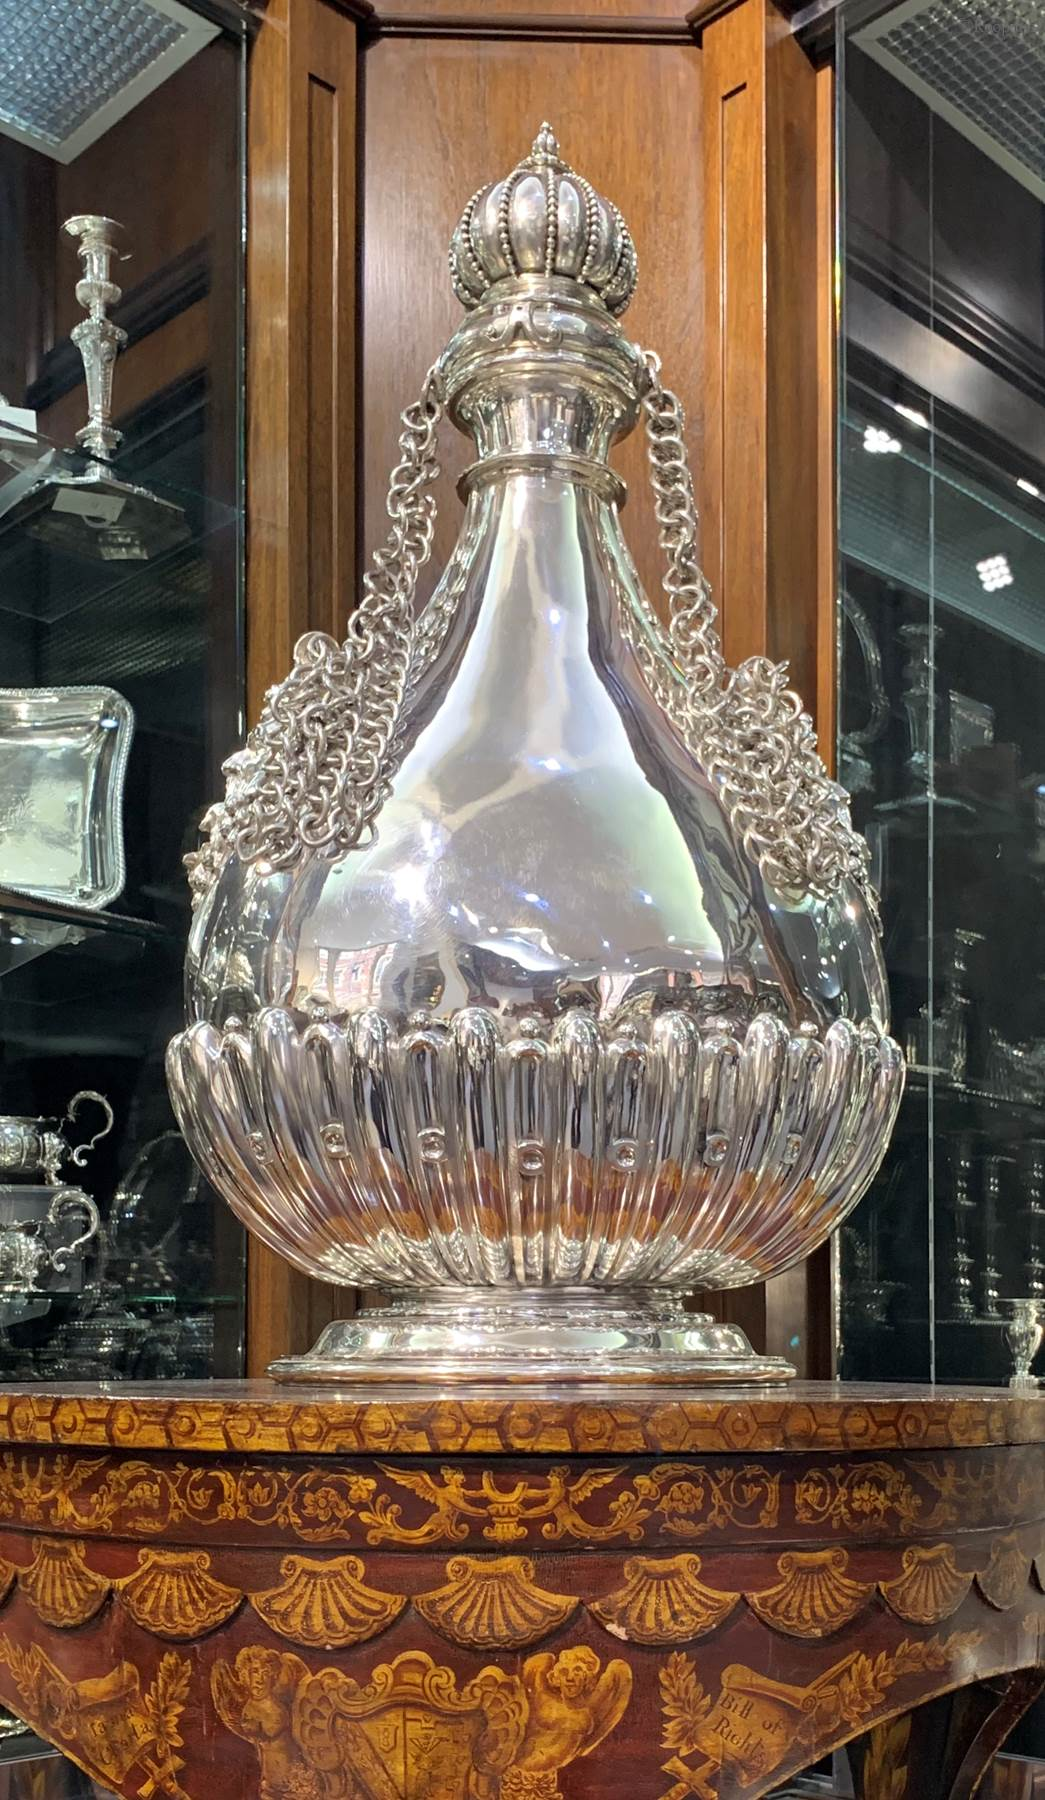 A Monumental 19th Century Pilgrim Bottle